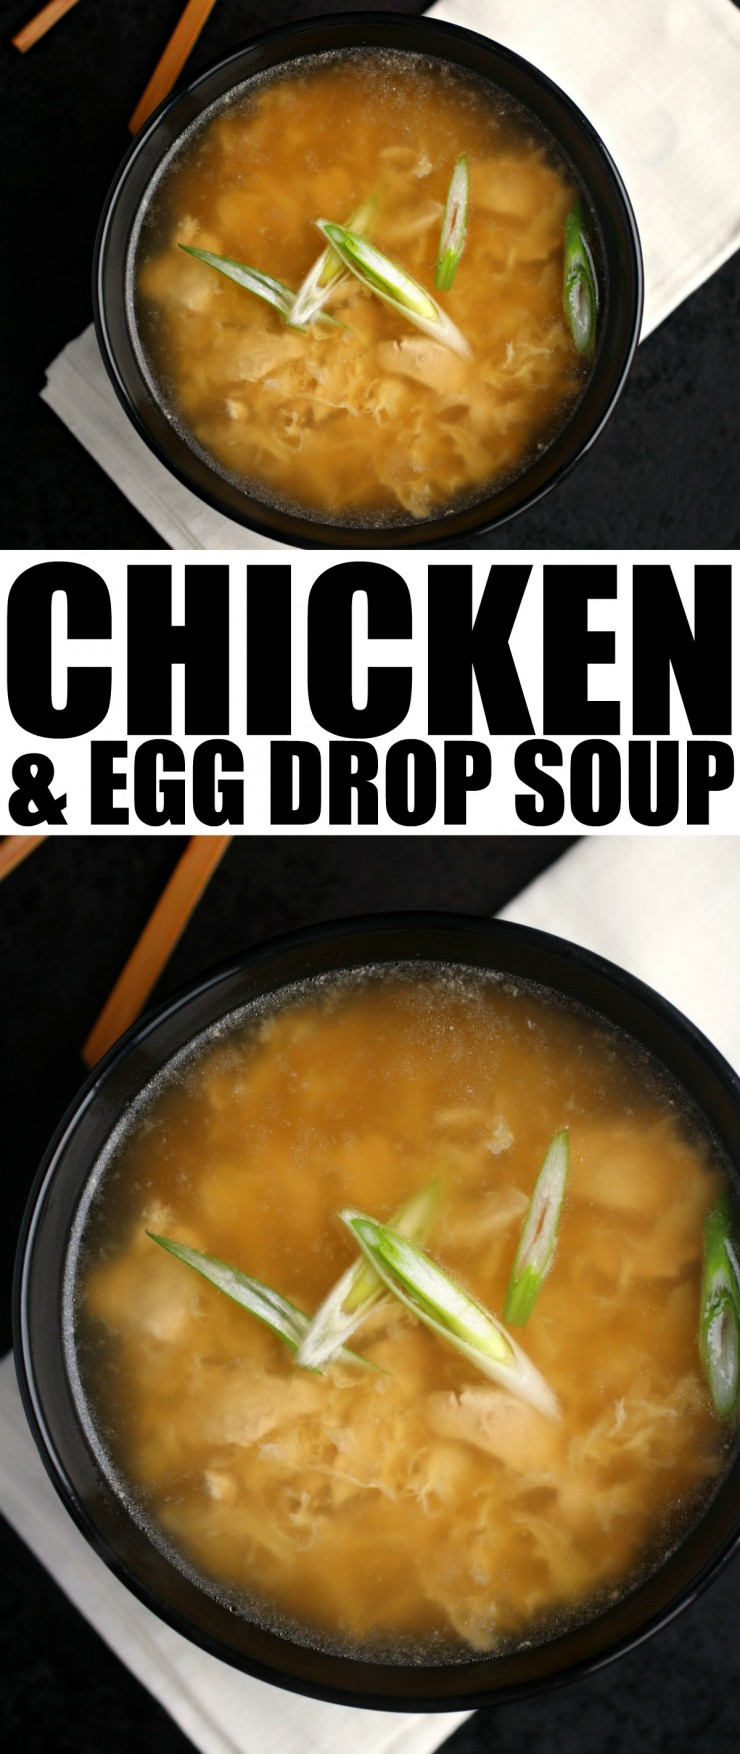 This easy Chicken & Egg Drop Soup will taste just like your favourite Chinese take-out, only better! Soothing and comforting with silky egg ribbons, nourishing broth and delicious chicken pieces.